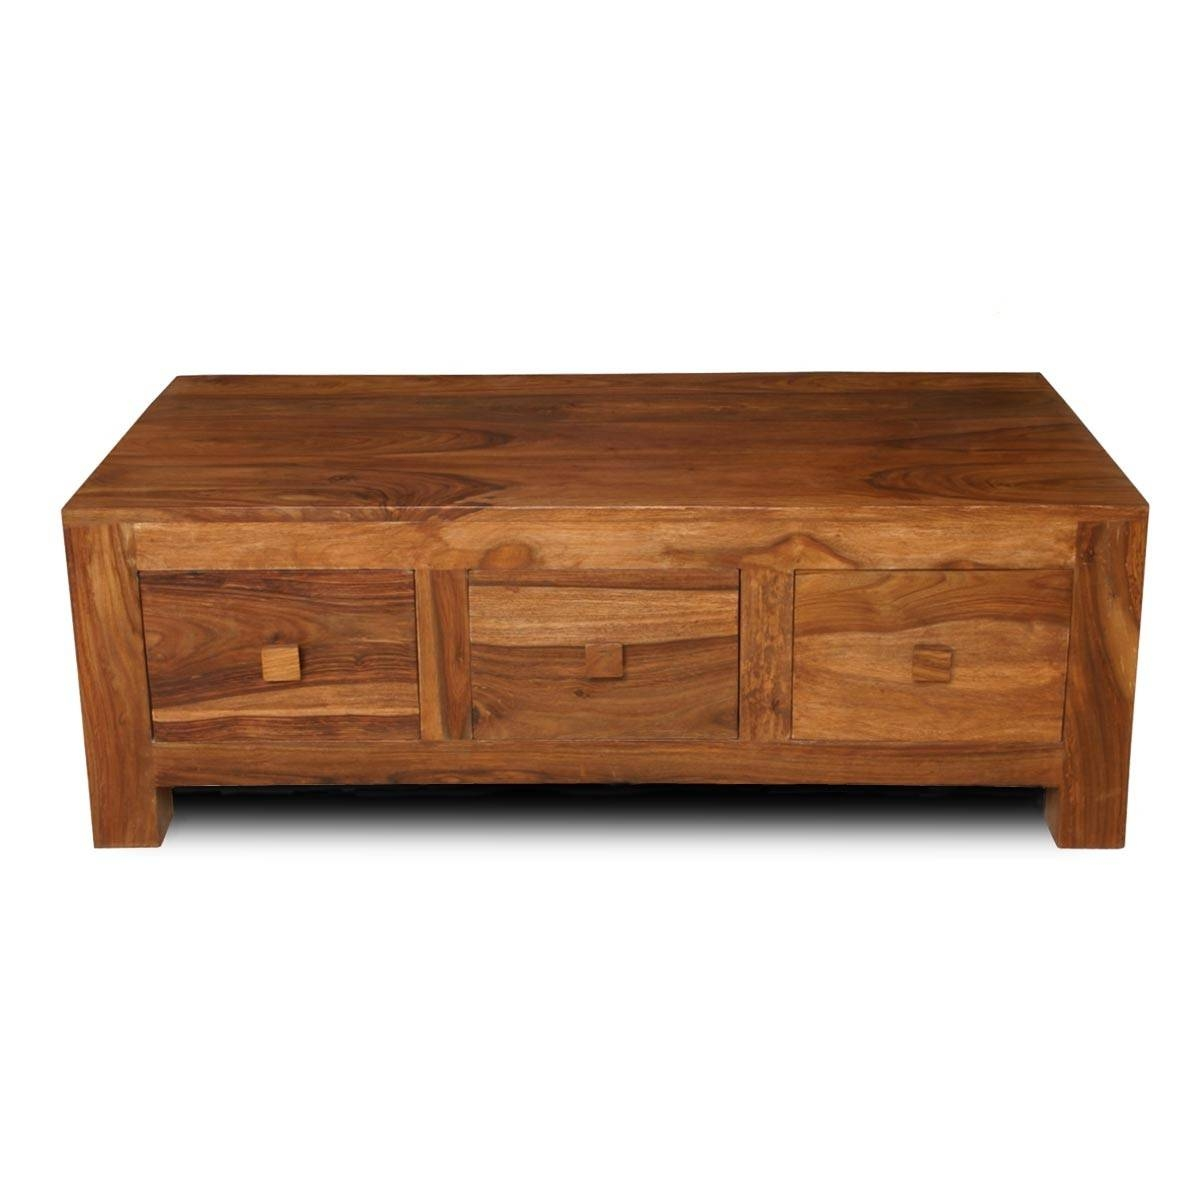 Living Room Solid Wood Coffee Tables | Casa Bella Furniture Uk for Sheesham Coffee Tables (Image 16 of 30)